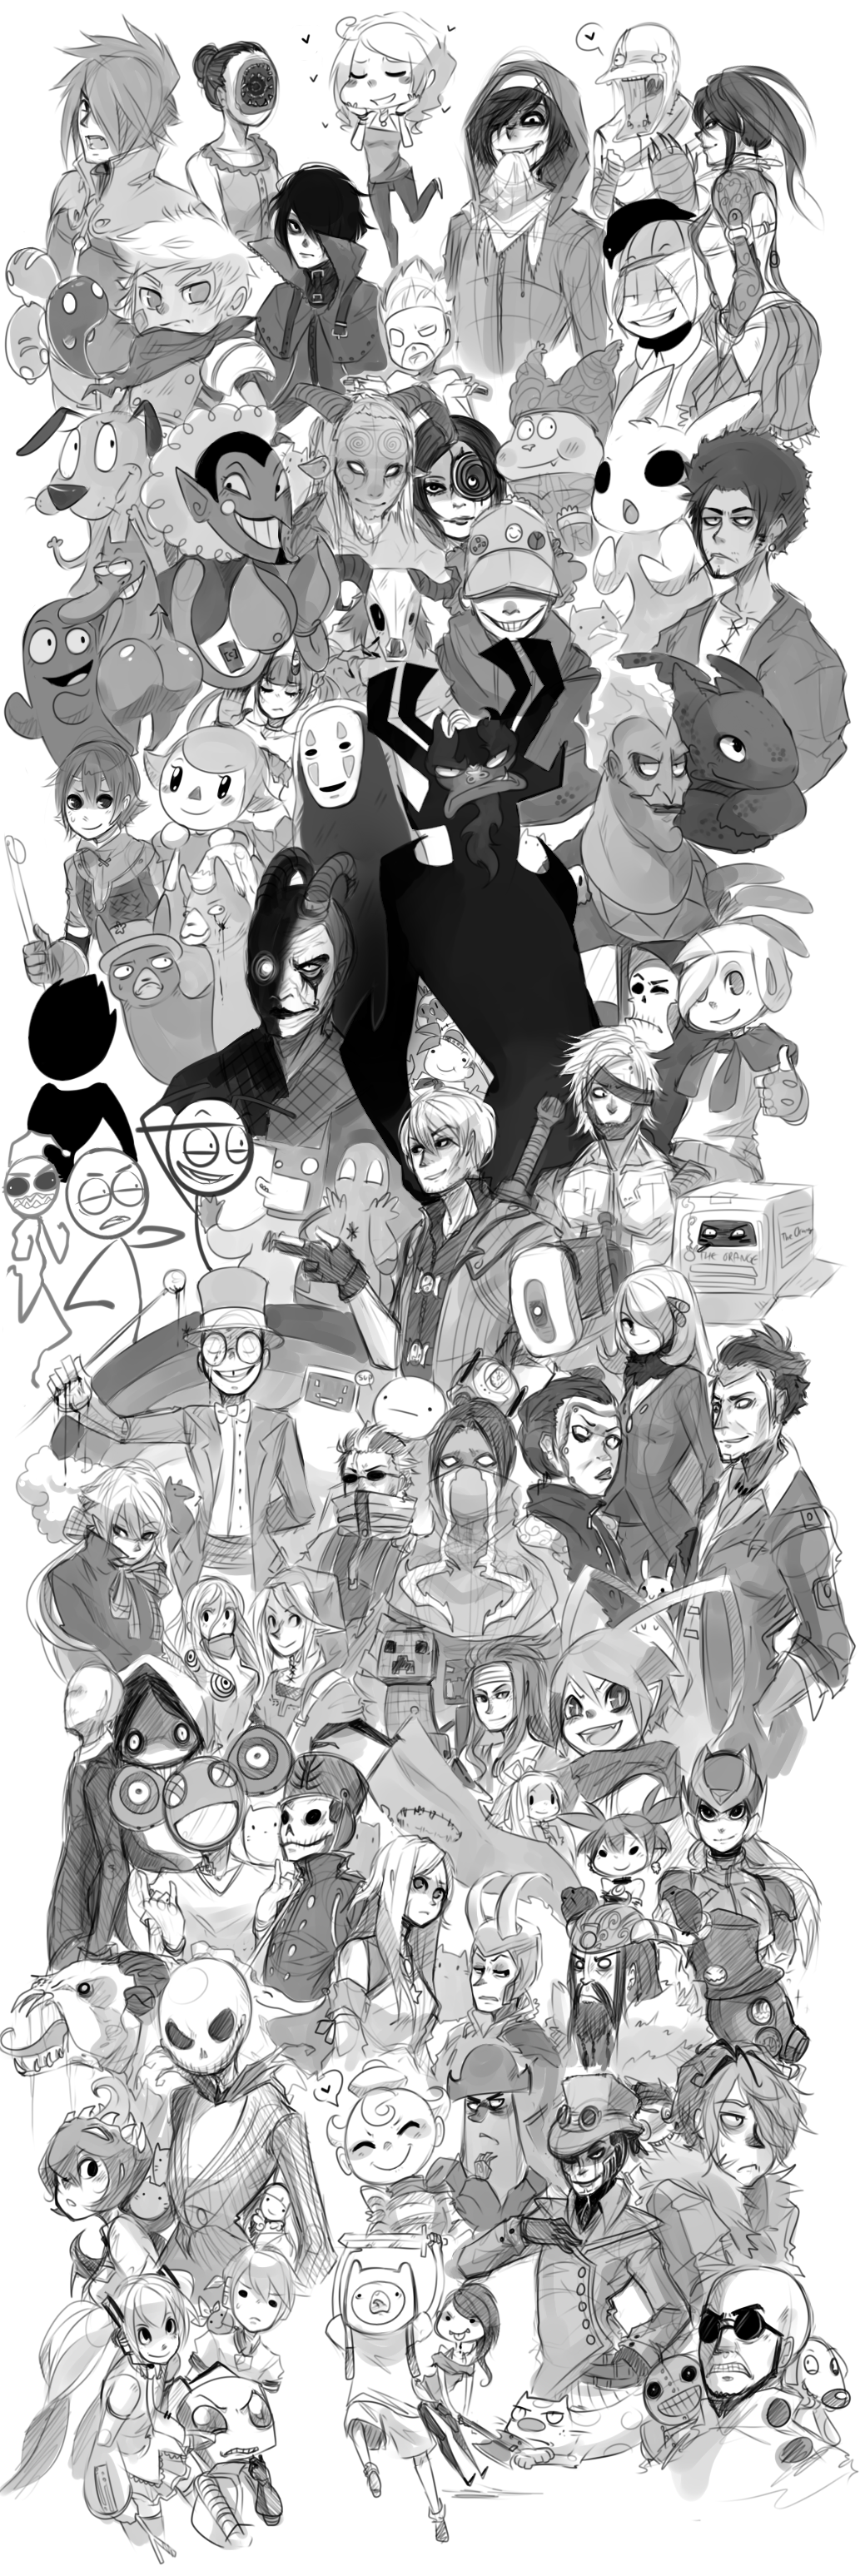 Wall of Fandom by AishaxNekox